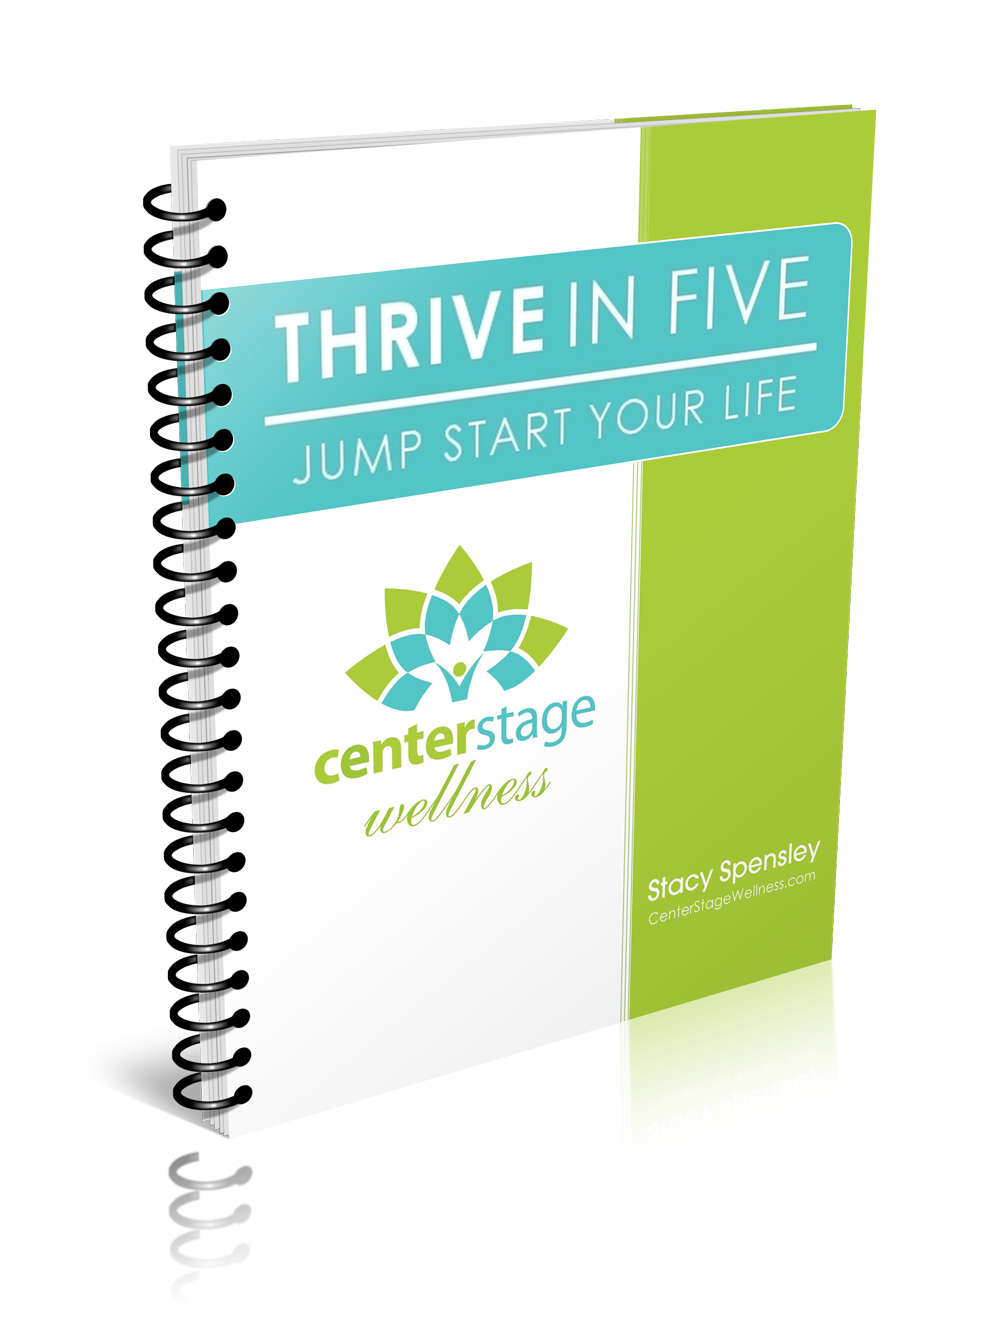 Thrive in Five!